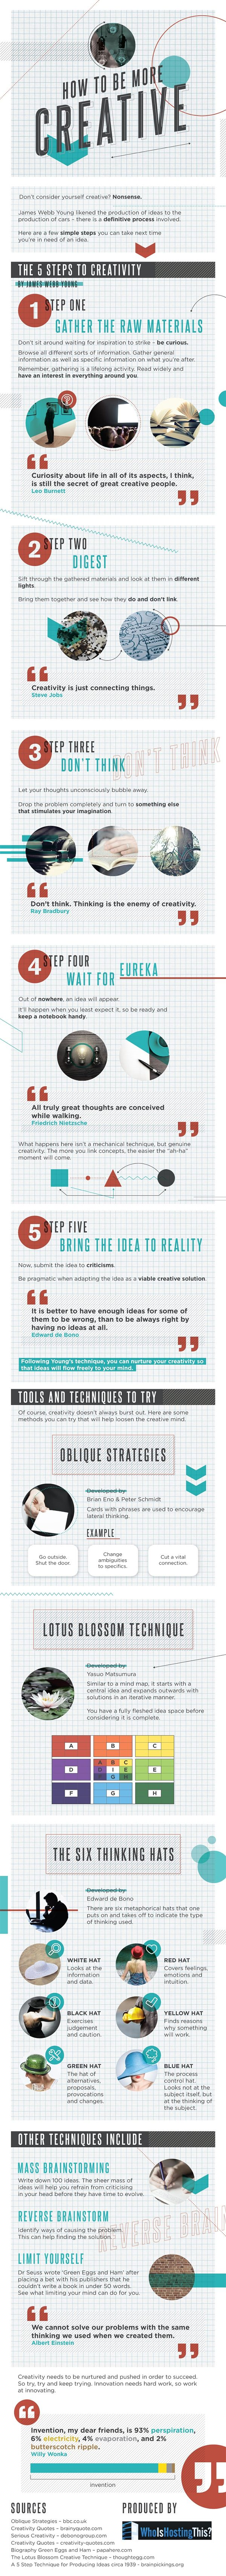 No Idea What to Blog About Here are 10 Techniques to Unleash Your Creativity #Infographic